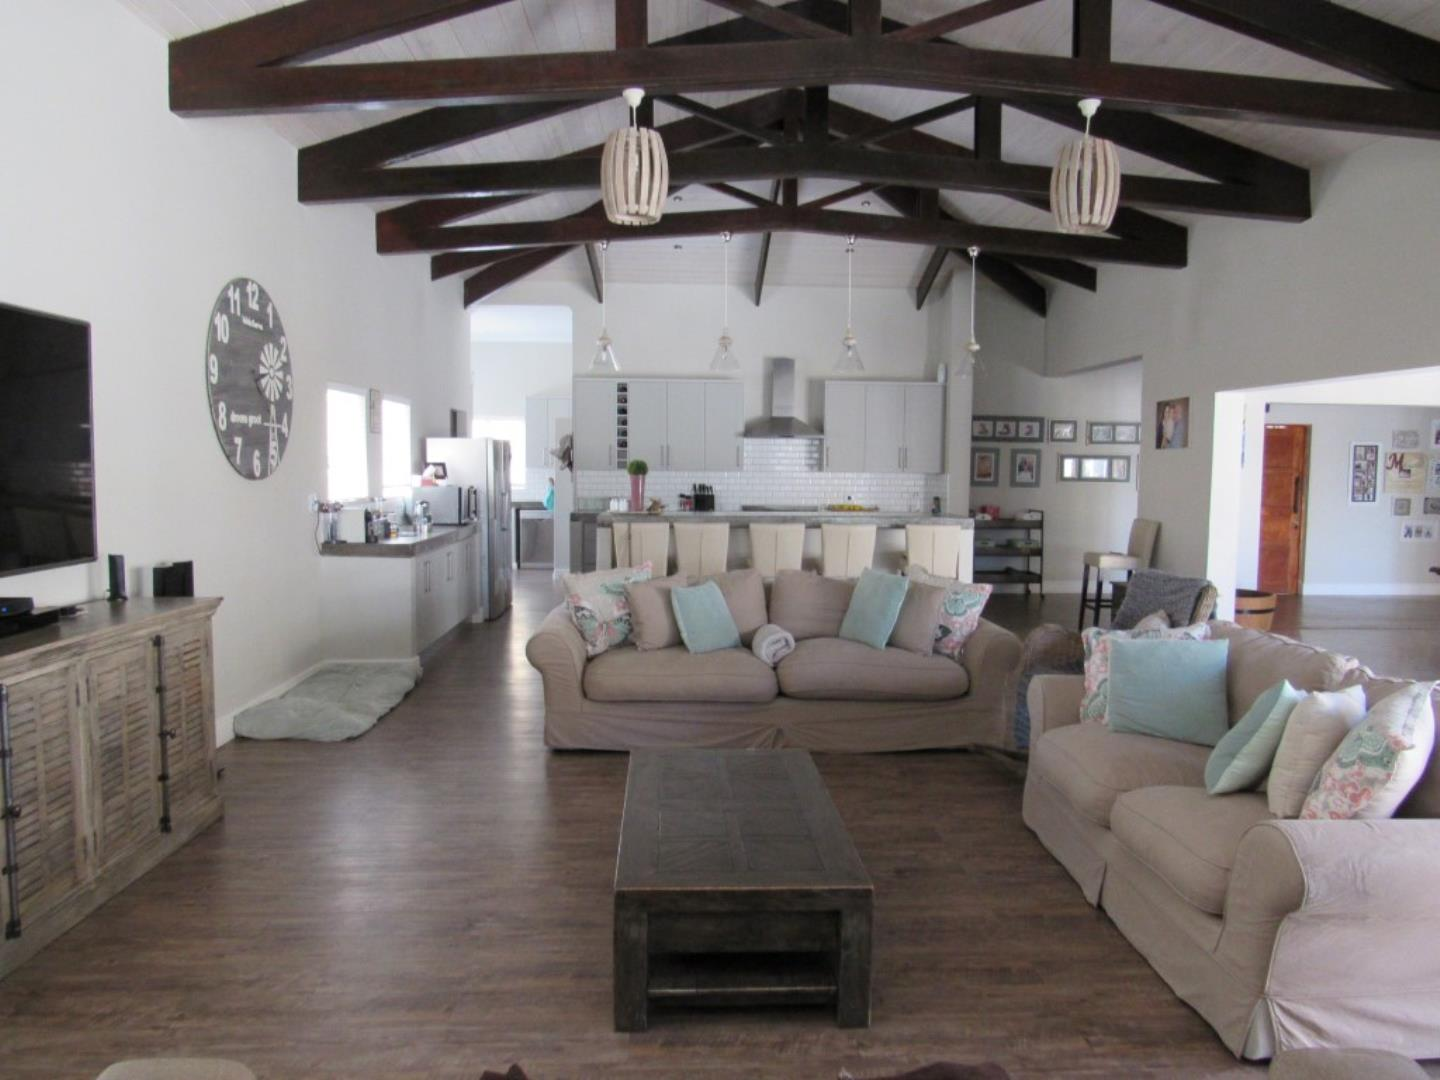 4 Bedroom House for Sale in Rossmund Golf Estate, Swakopmund - Erongo